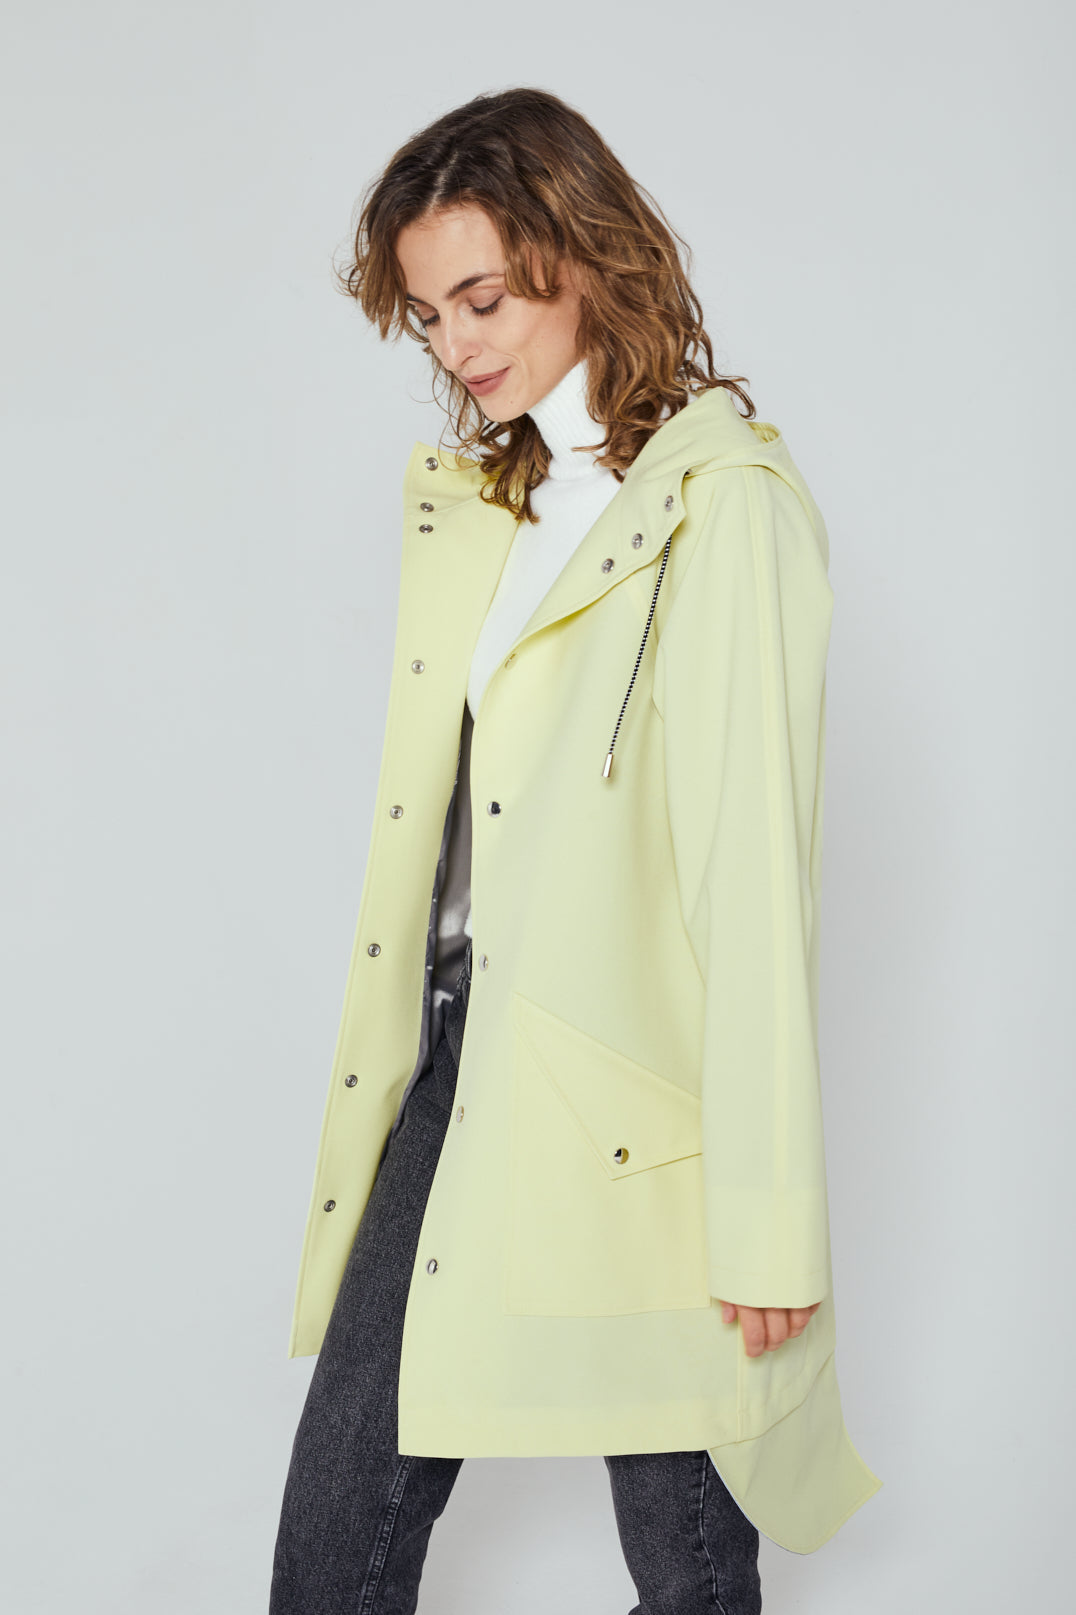 Unisex City Raincoat